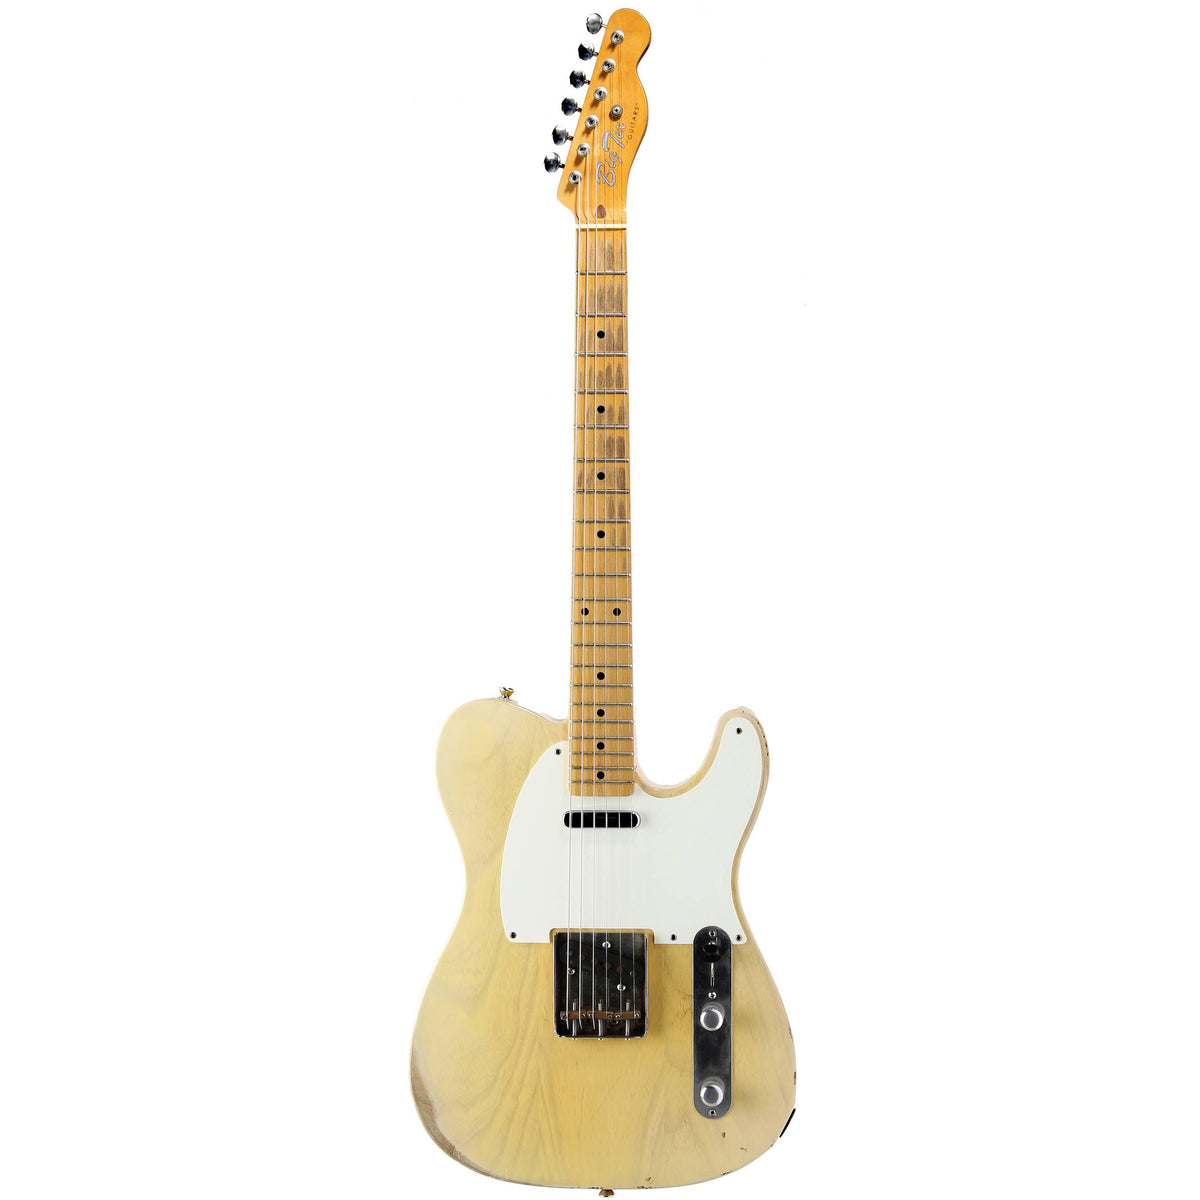 2008 Big Tex '54 Telecaster - Garrett Park Guitars  - 3